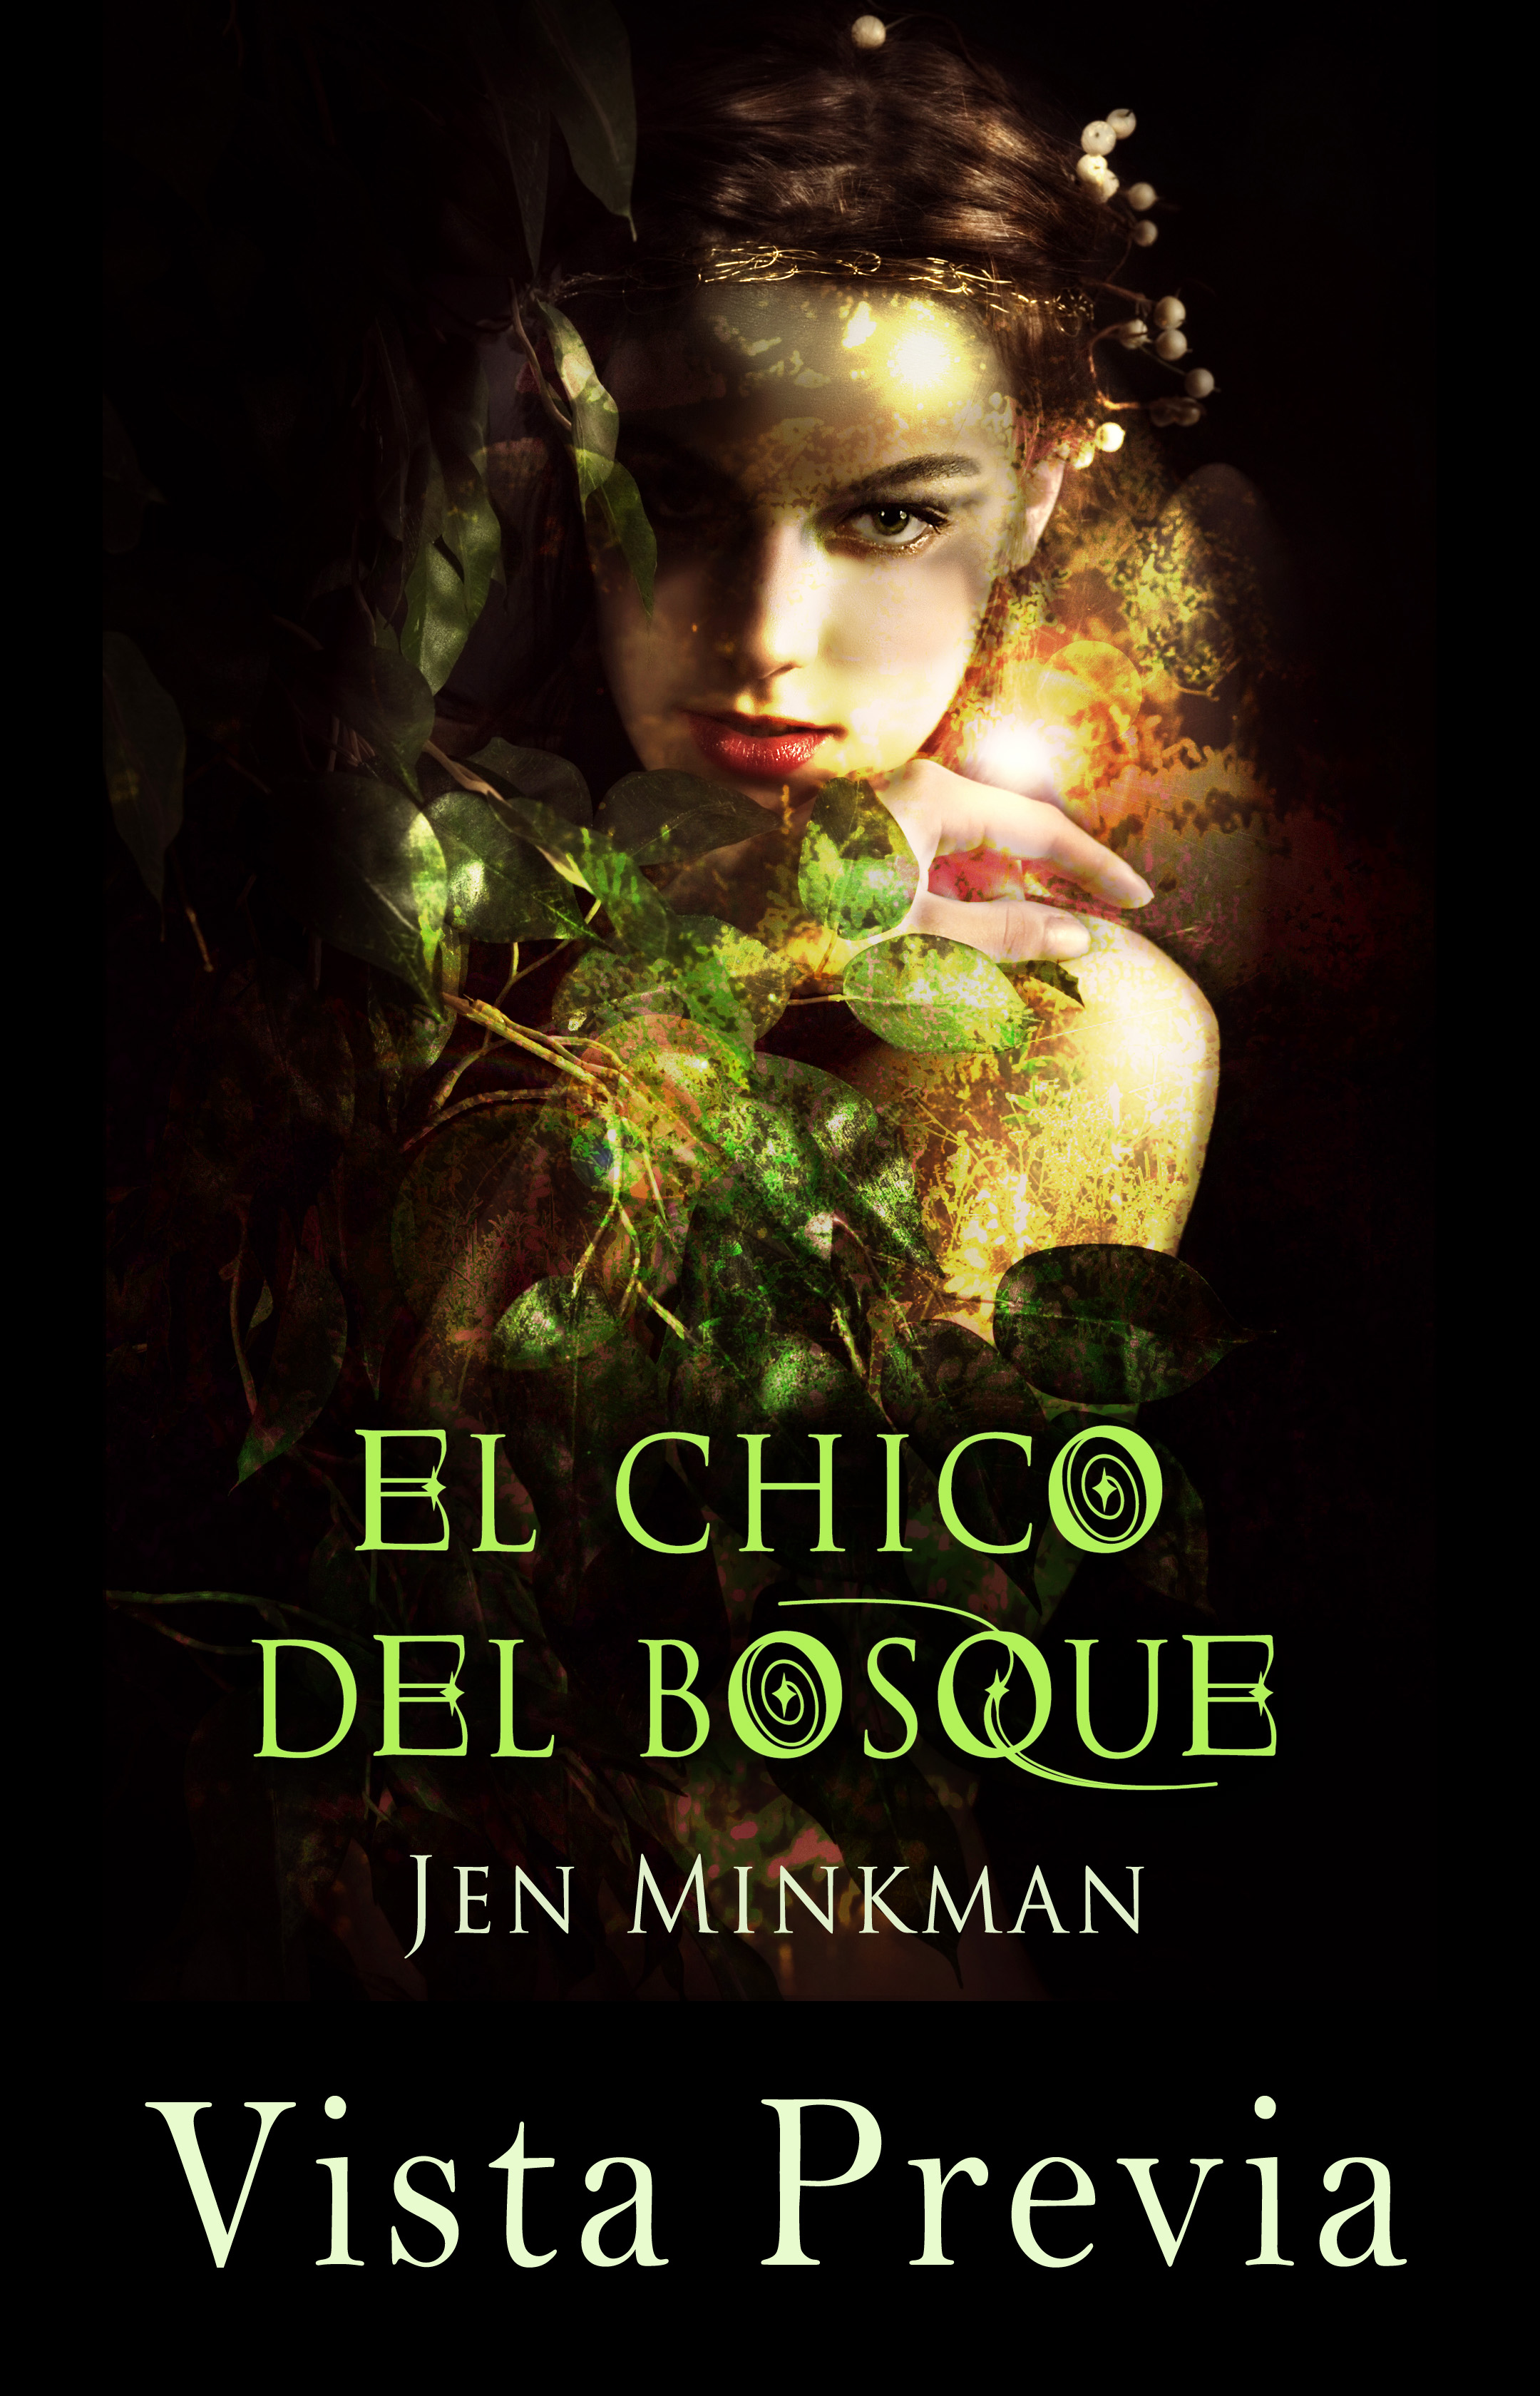 El chico del bosque (reading sample)